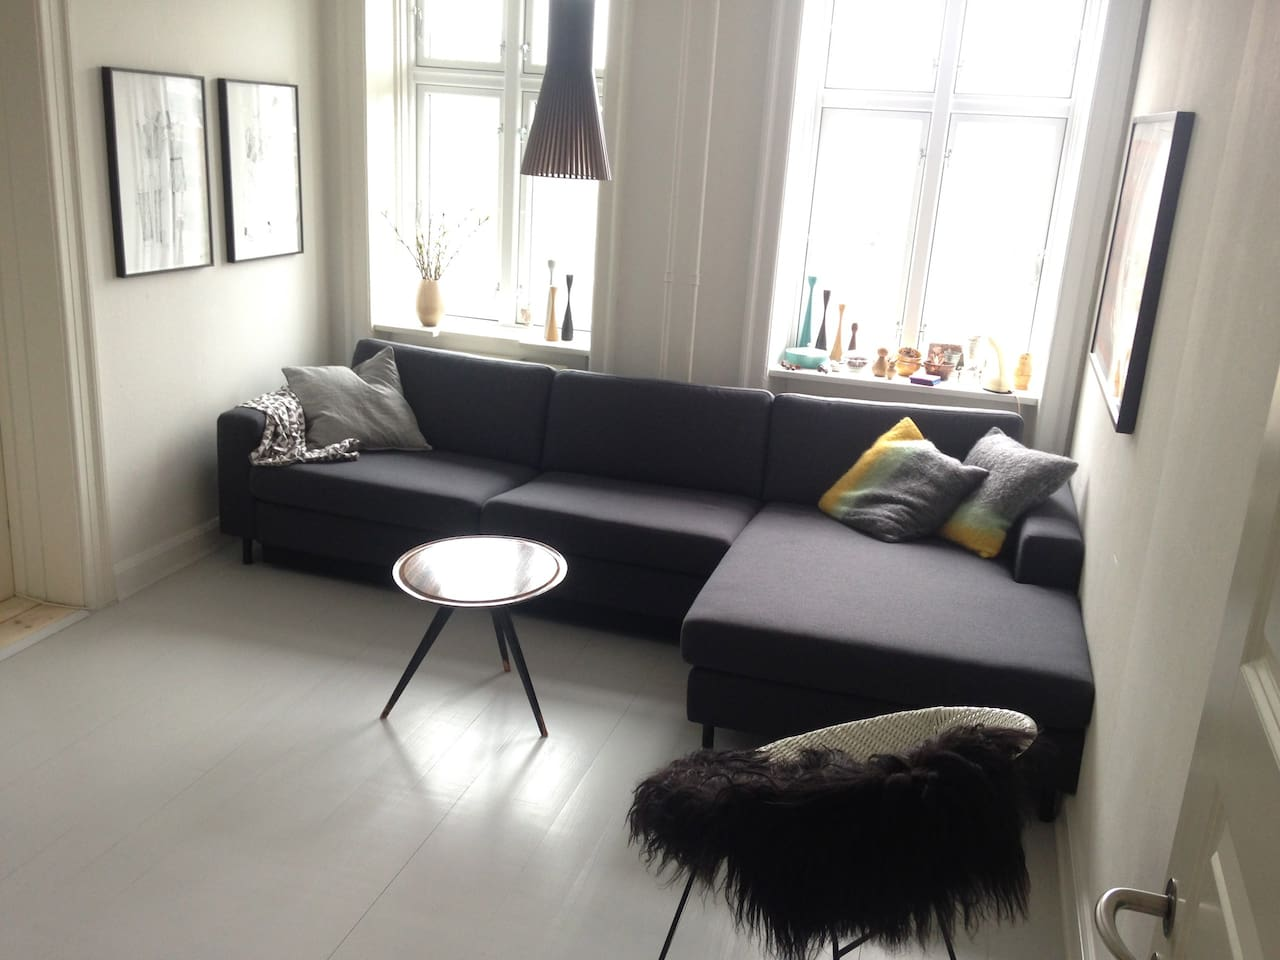 Living room with a double sofa bed